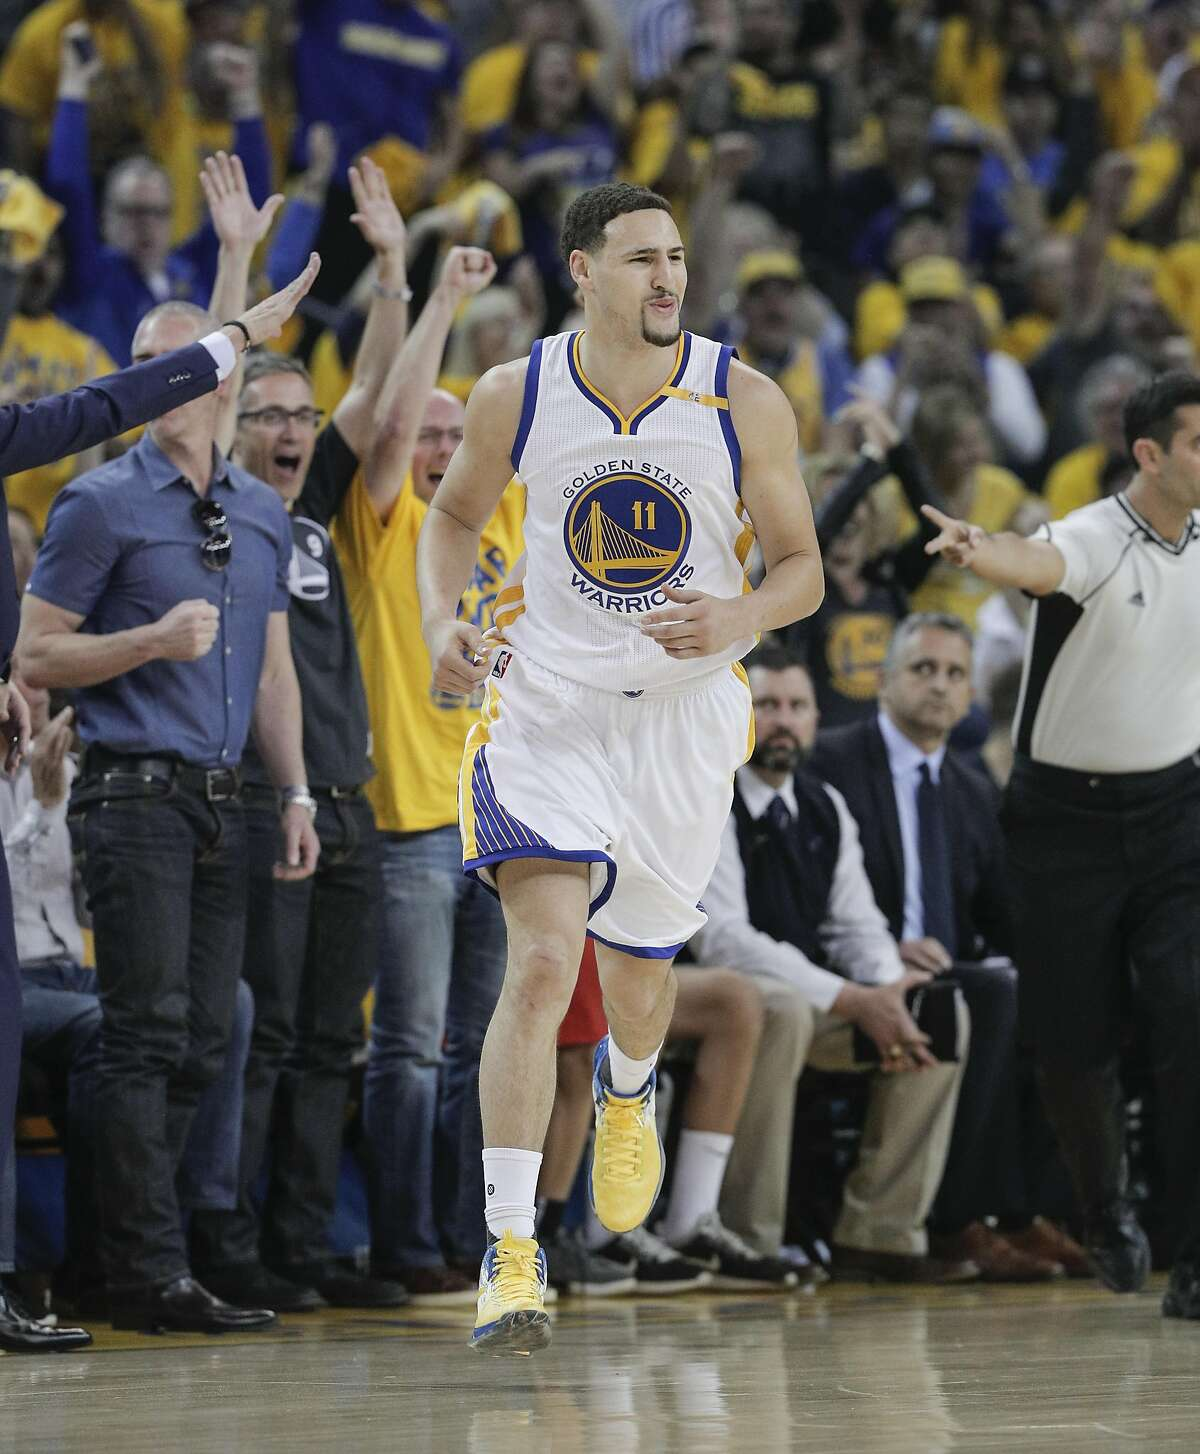 Golden State Warriors' Klay Thompson reacts after hitting a three-point shot in the first quarter during Game 2 of the Western Conference Semifinals 2017 NBA Playoffs at Oracle Arena on Thursday, May 4, 2017 in Oakland, Calif.